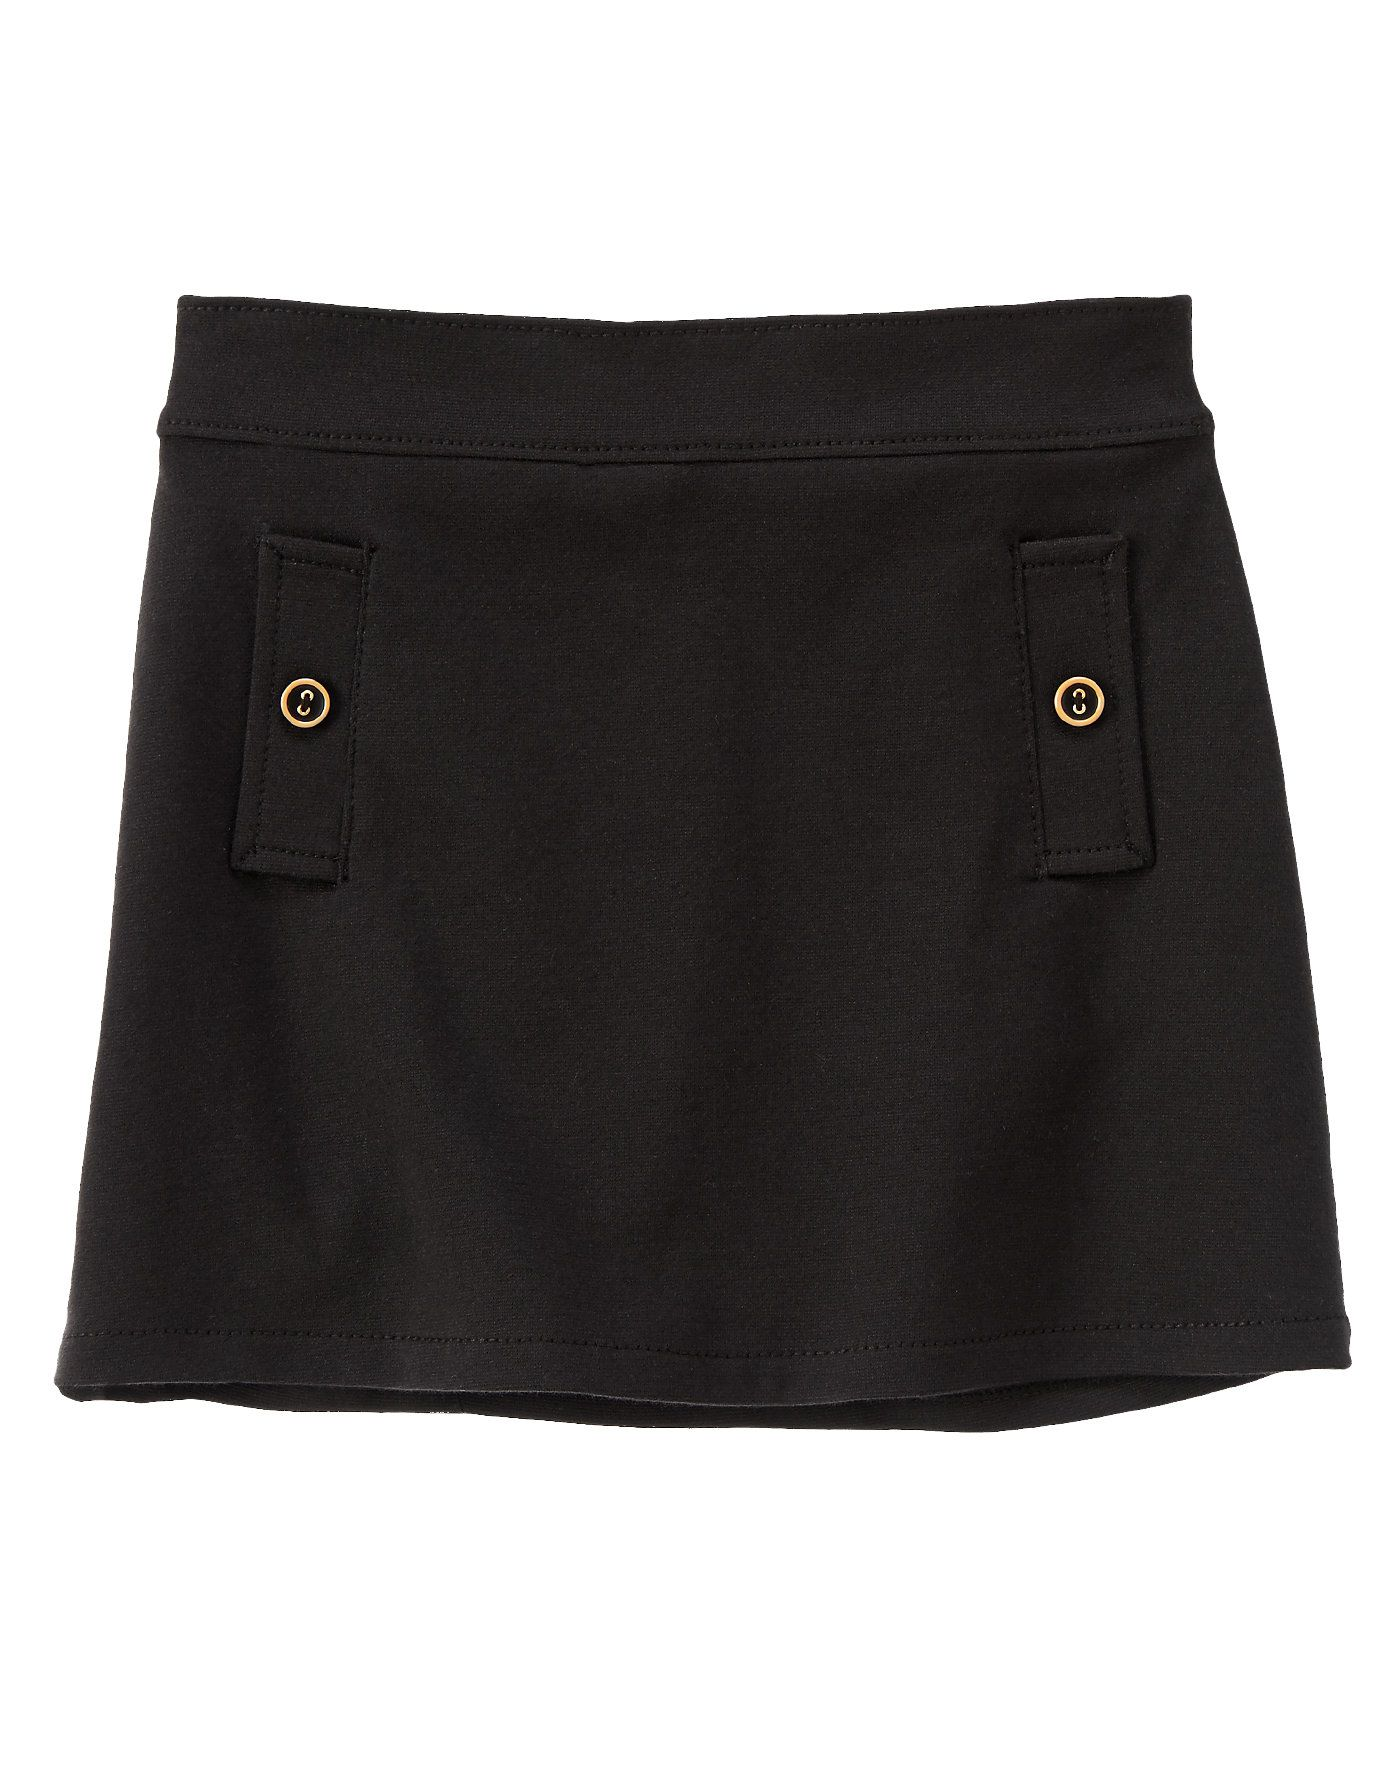 Button Pocket Skirt at Gymboree